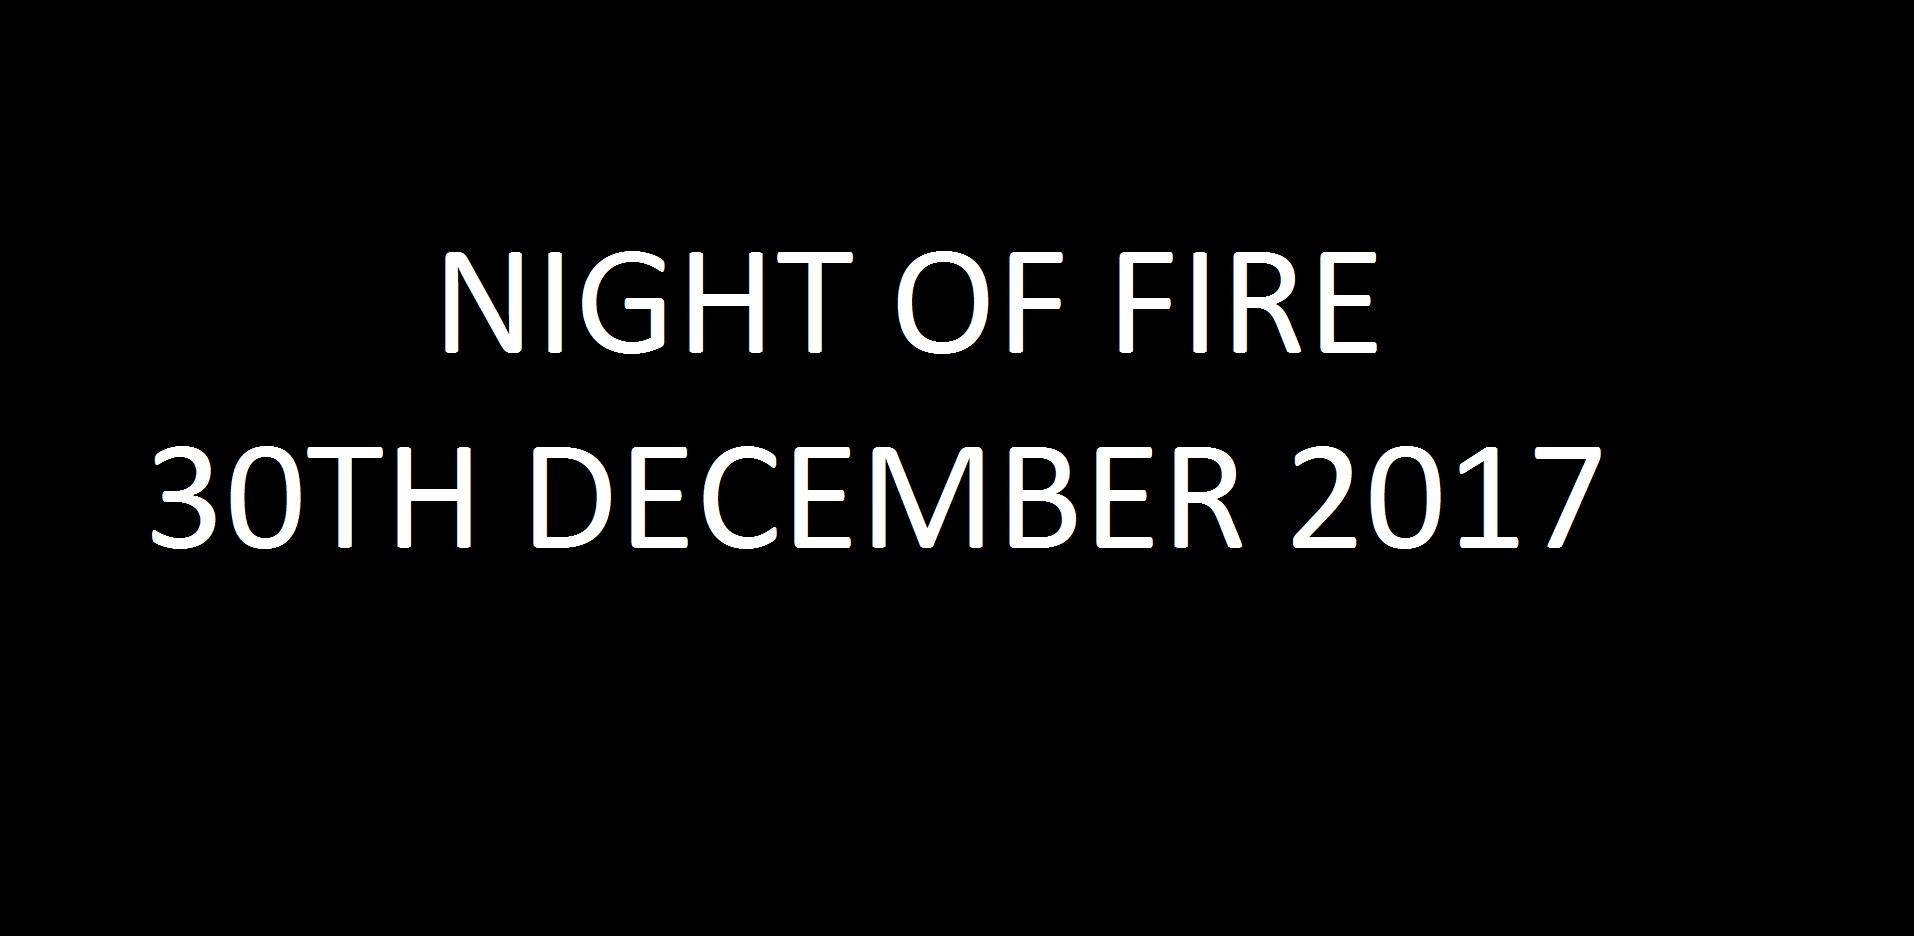 04. Night of Fire - 30th December 2017 Image